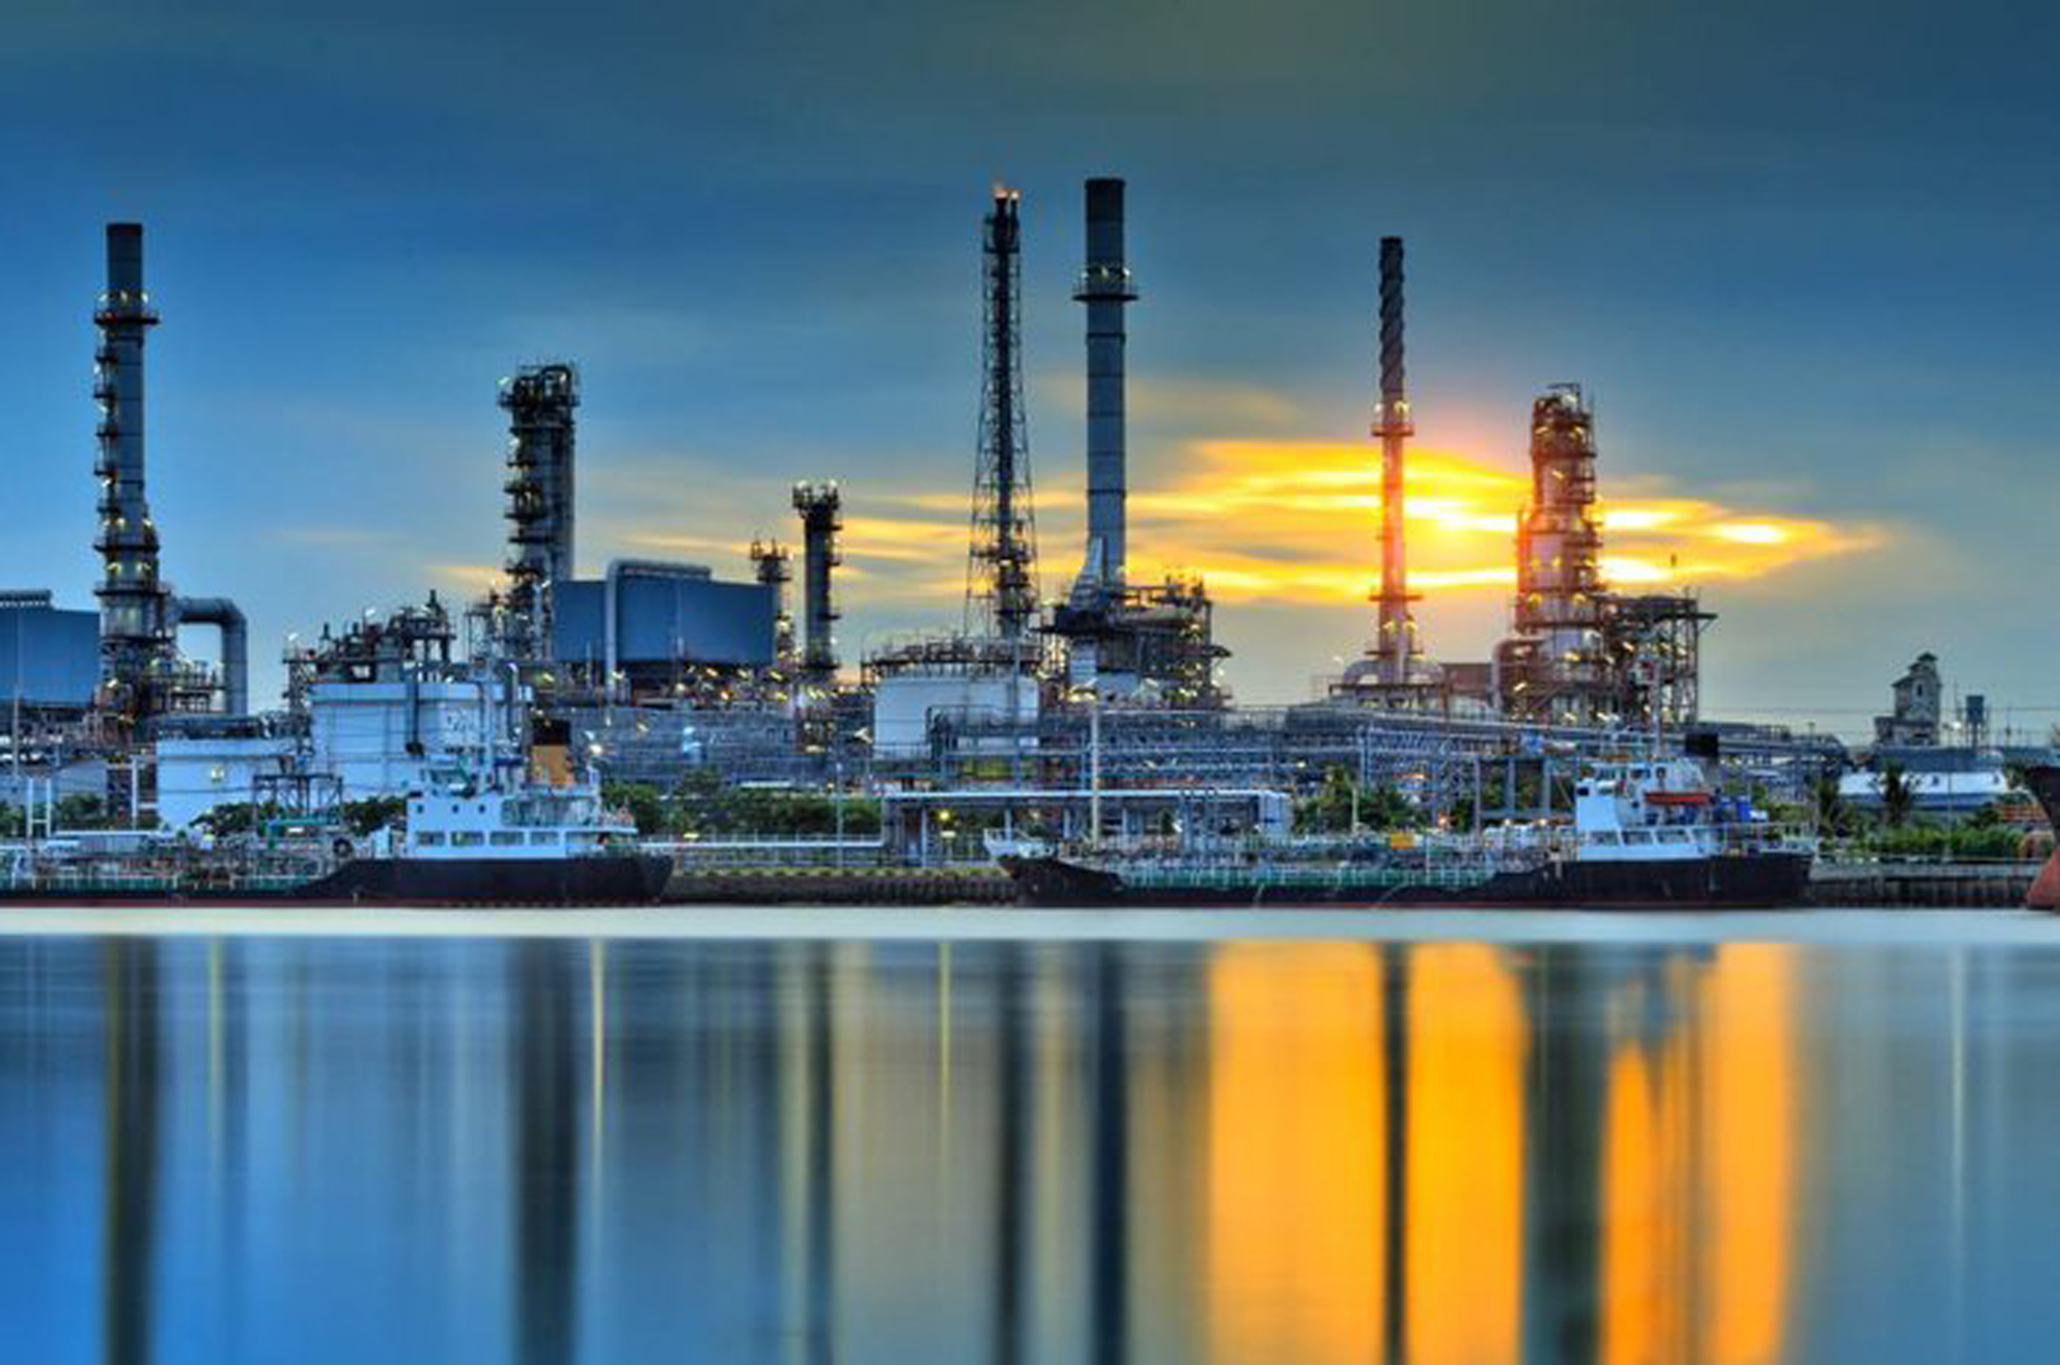 countrys largest refinery - HD 2630×1582